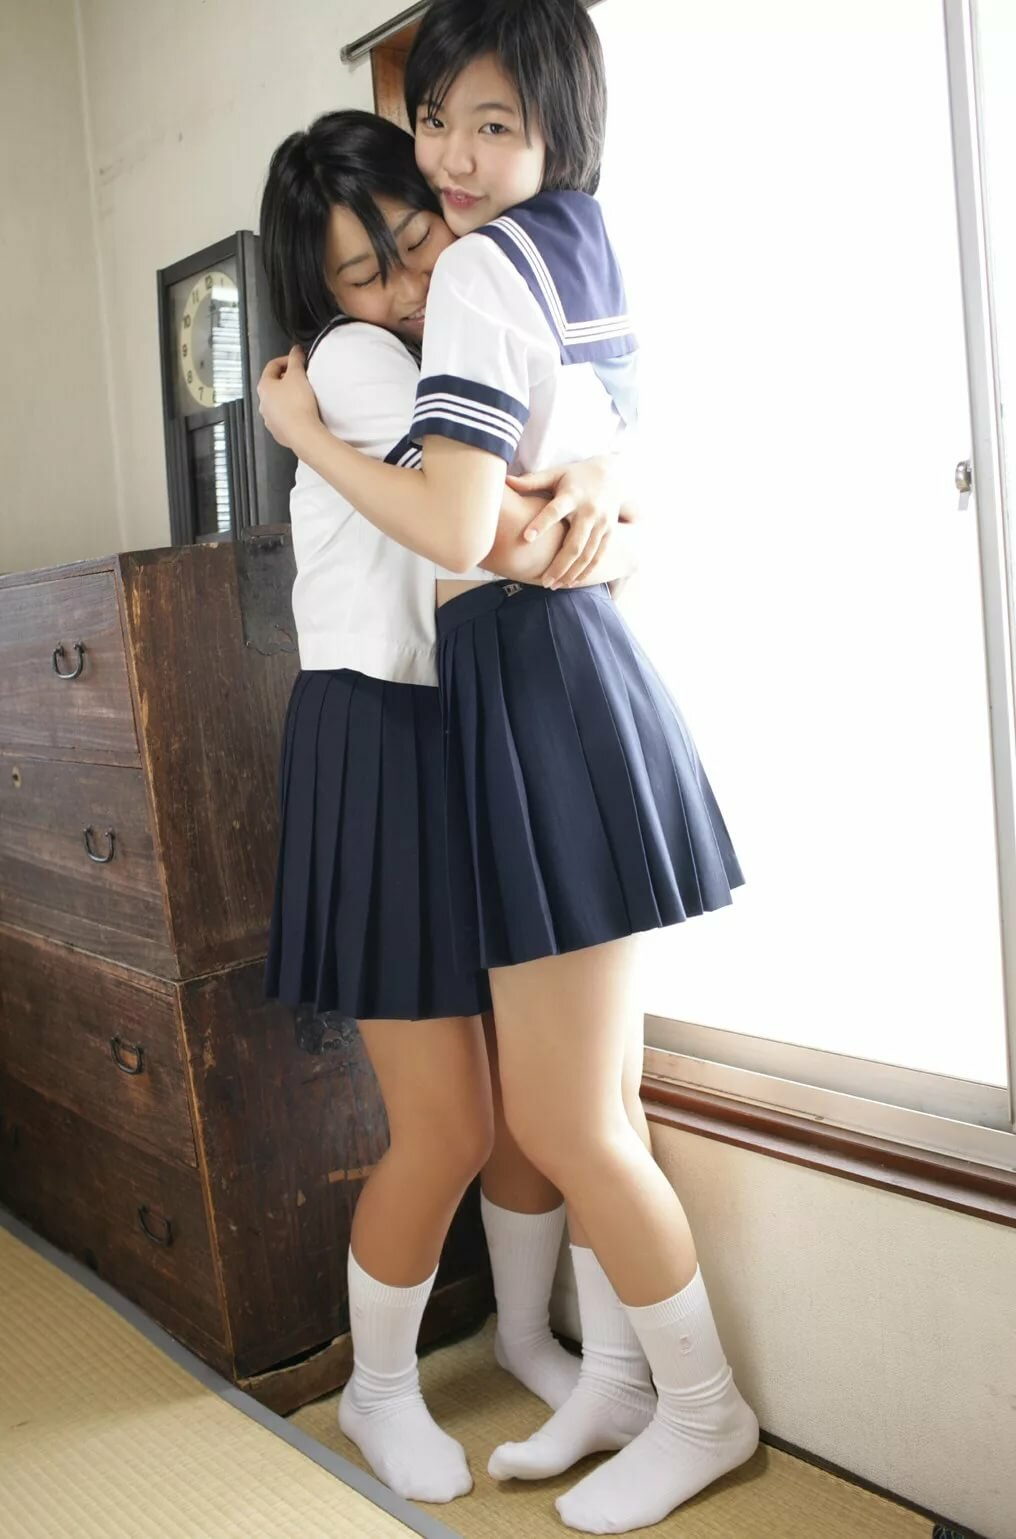 grey-gallery-kiss-hot-schoolgirl-girls